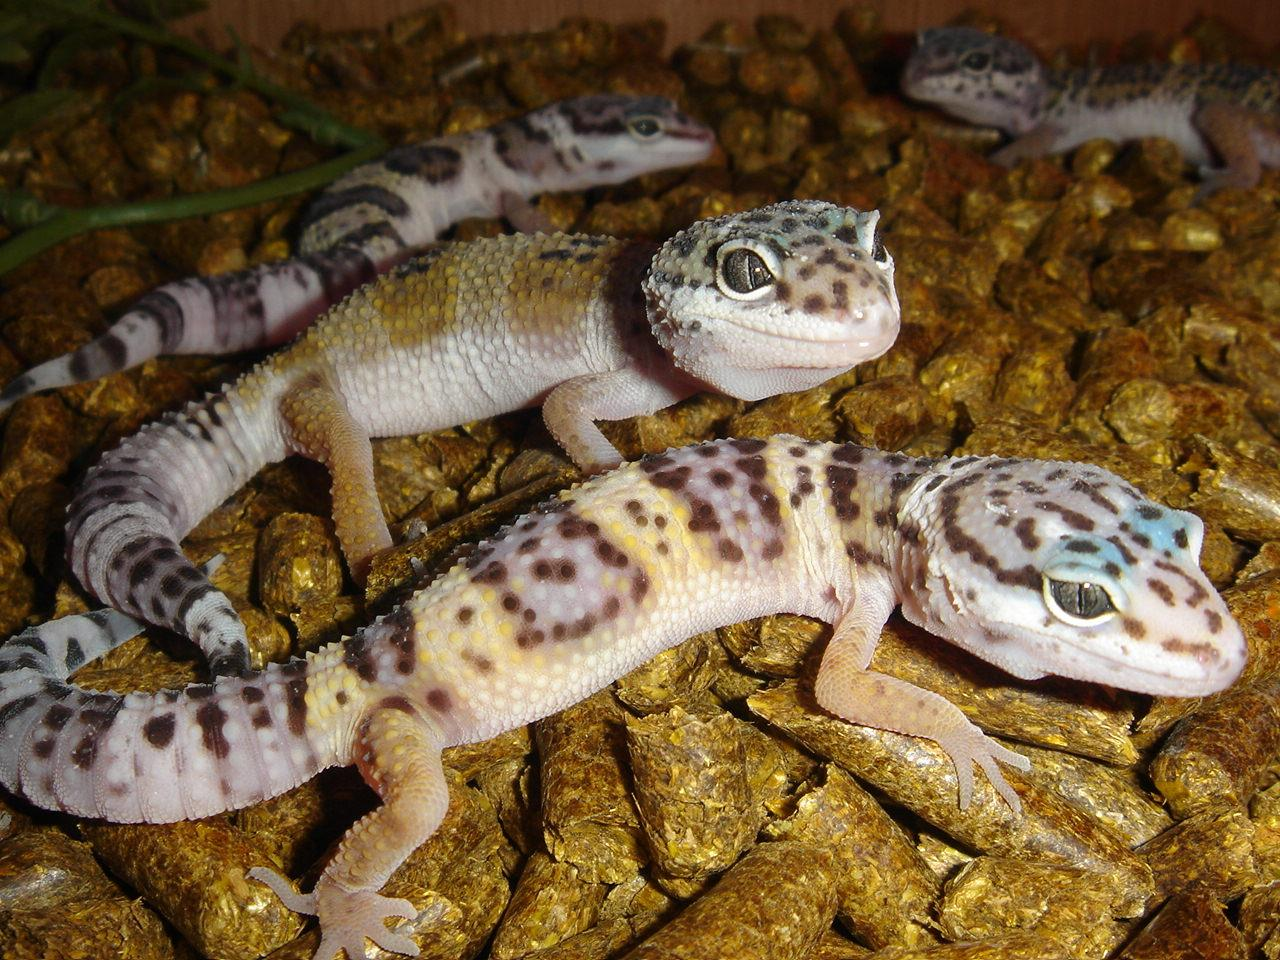 Can Leopard Geckos Eat Baby Food